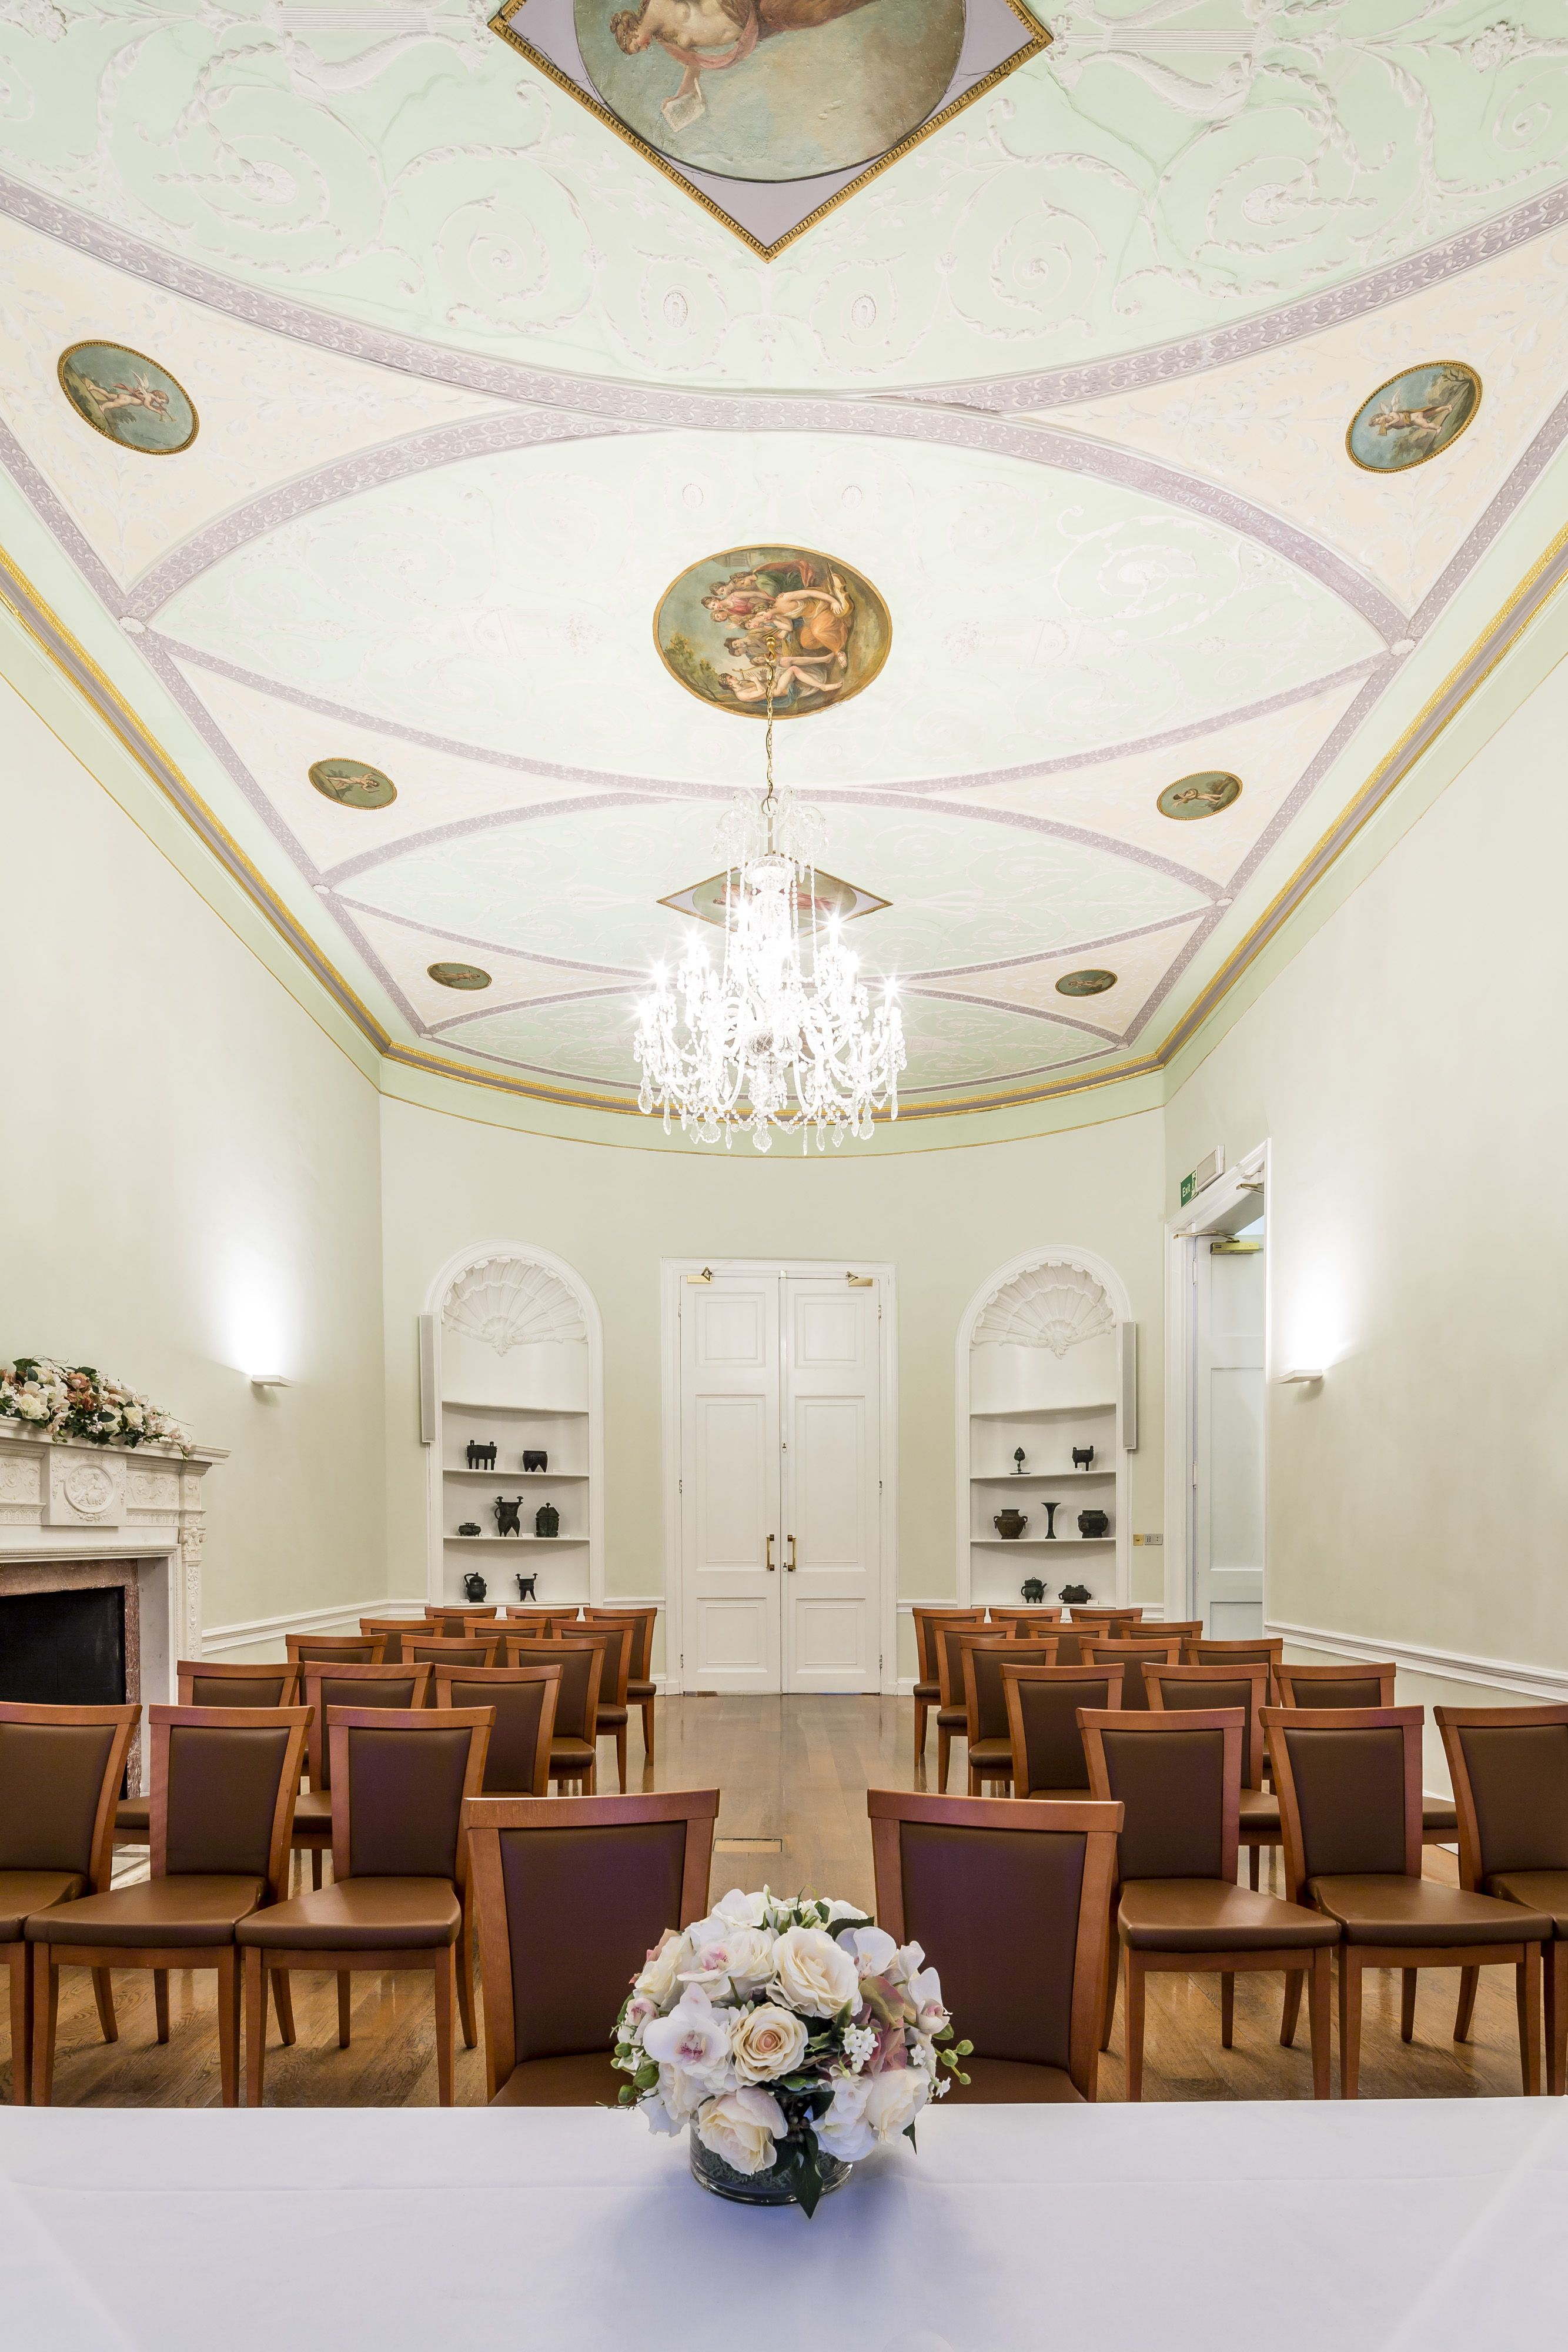 licensed wedding venues in north london%0A Wedding at Chelsea Old Town Hall  London  Brydon Room    Wedding  Photography    Pinterest   Chelsea  Hall and Wedding